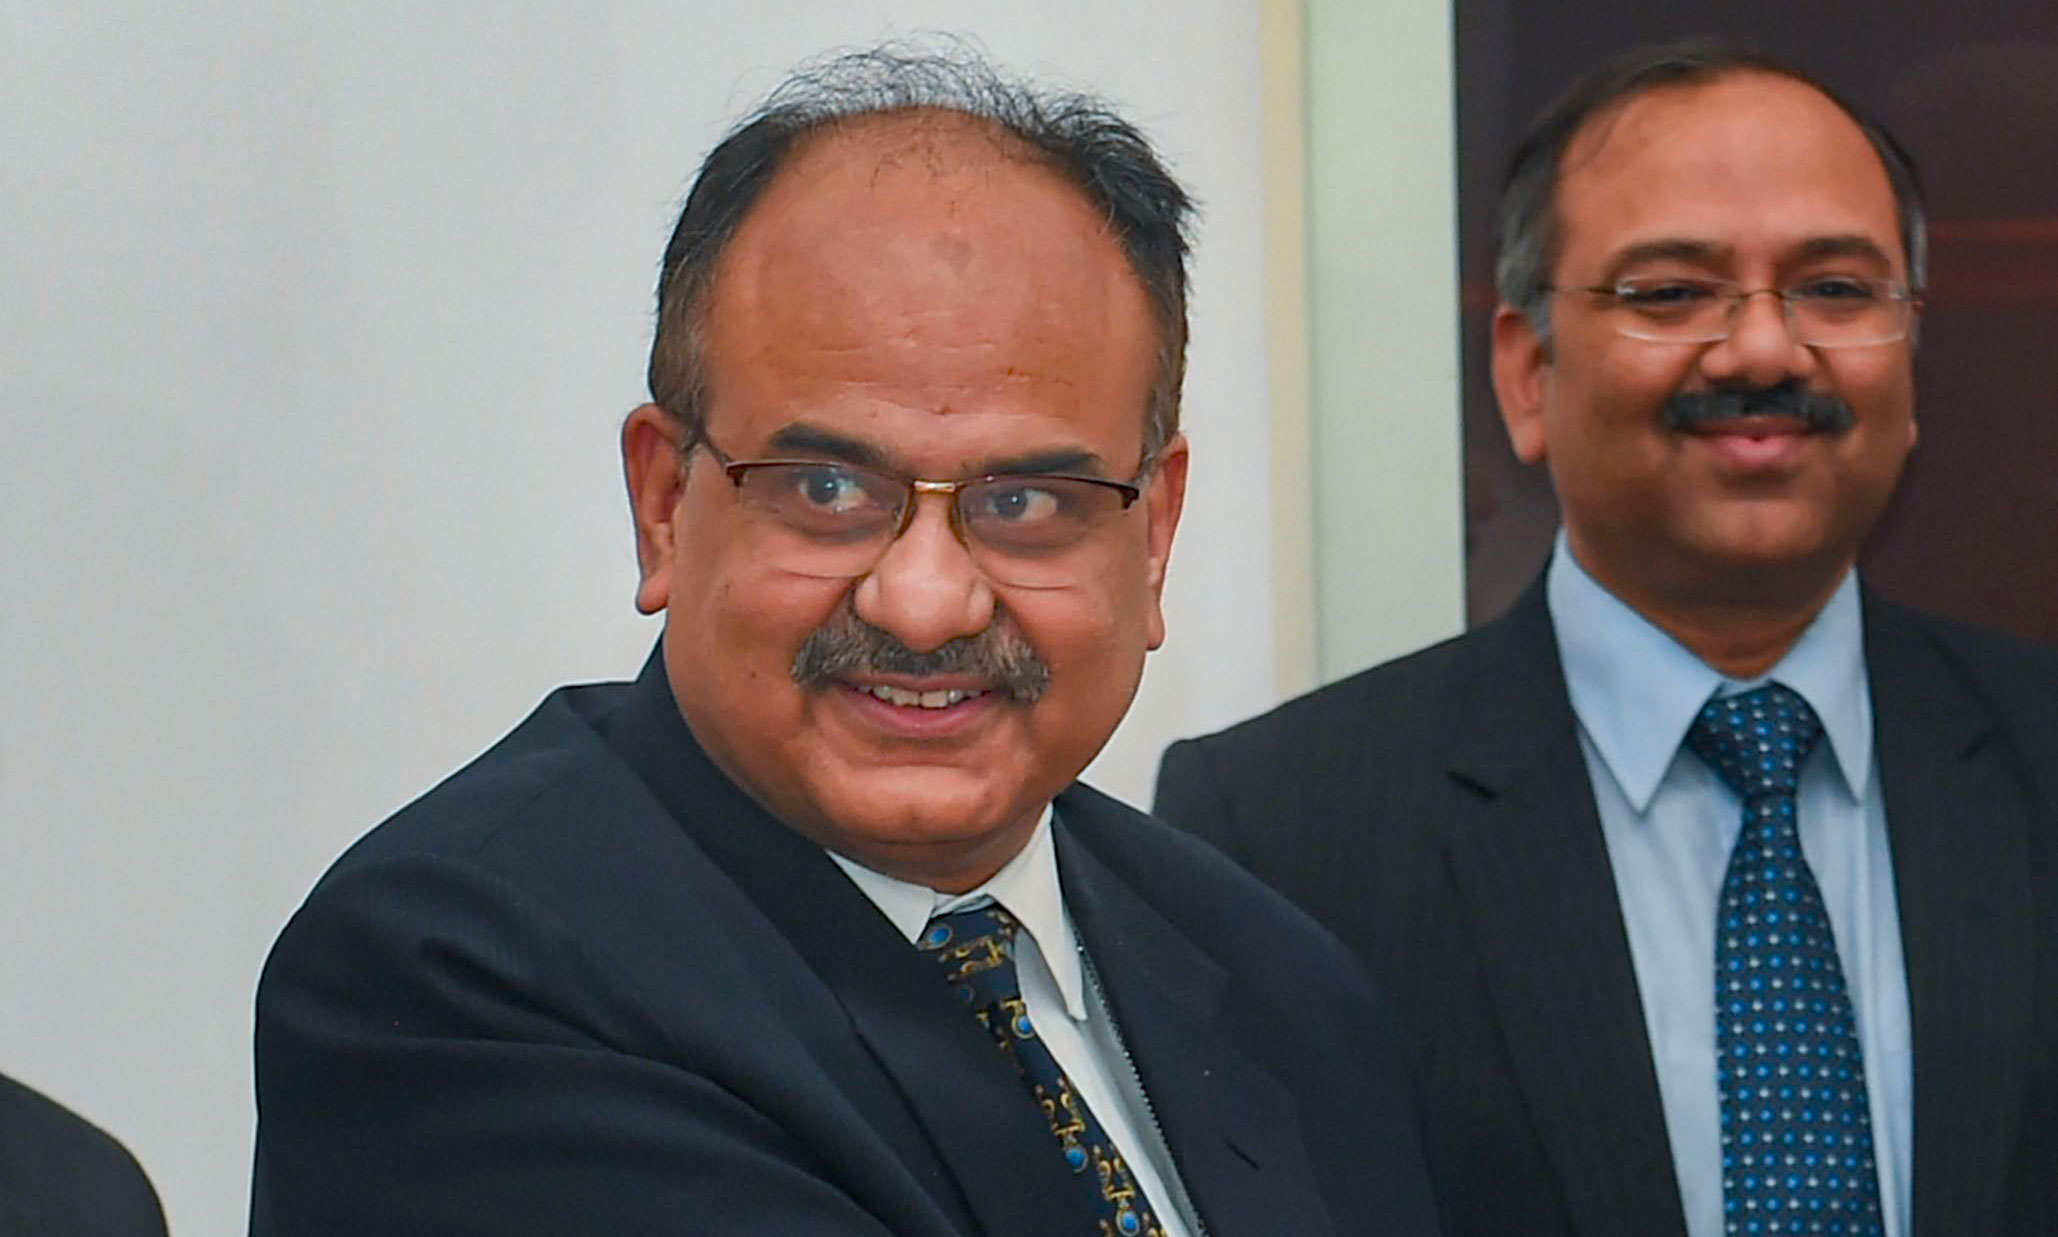 Revenue secretary Ajay Bhushan Pandey in October inaugurated the National e-Assessment Scheme, under which the assignment of cases would be random and location agnostic.